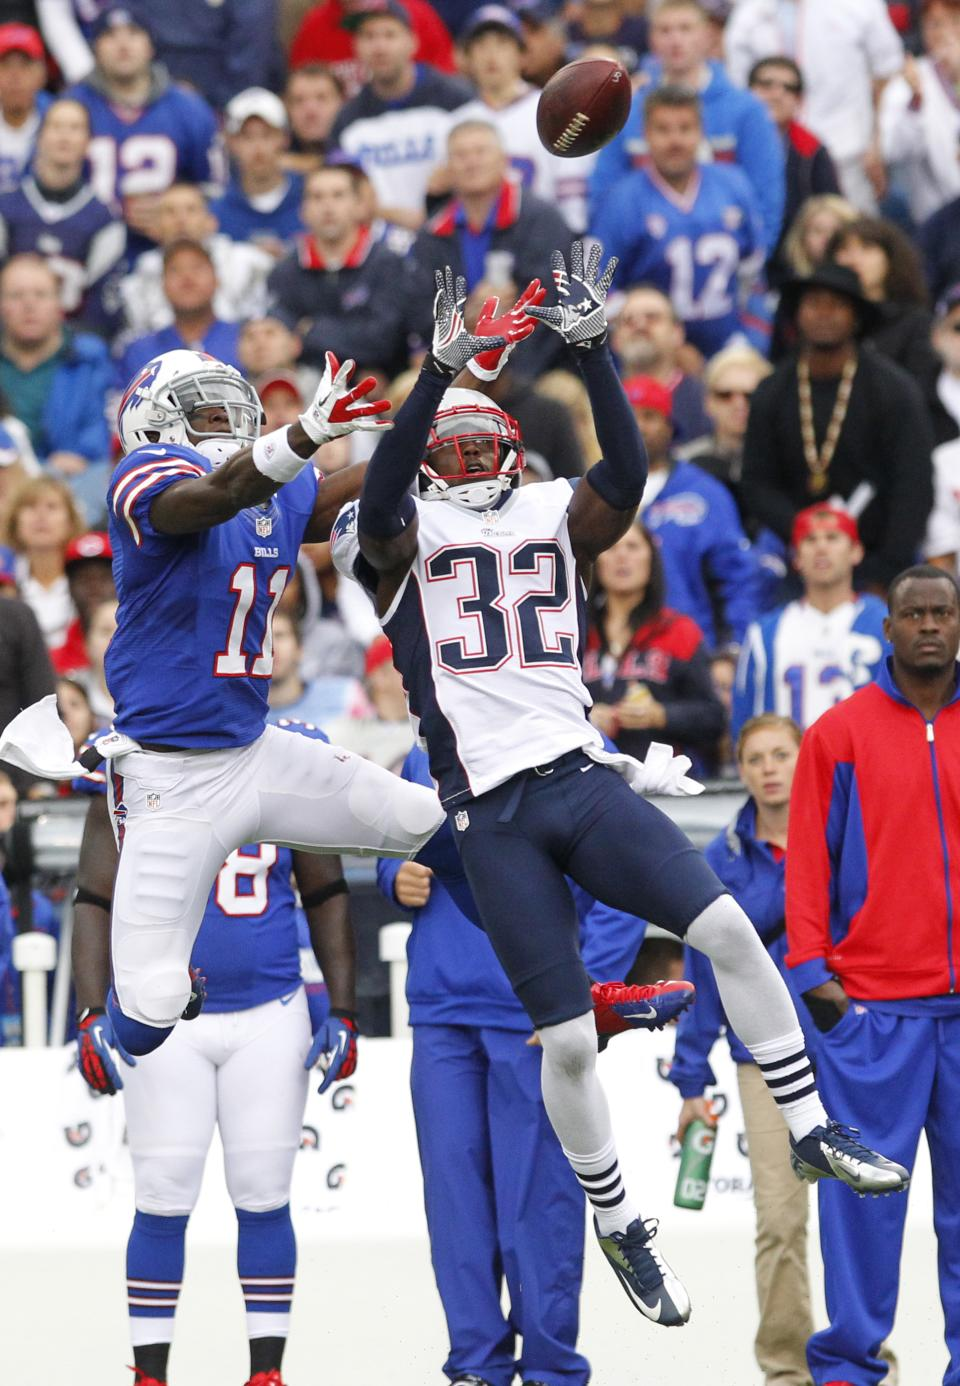 New England Patriots' Devin McCourty (32) intercepts a pass intended for Buffalo Bills' T. J. Graham (11) during the first half of an NFL football game in Orchard Park, N.Y., Sunday, Sept. 30, 2012. (AP Photo/Bill Wippert)